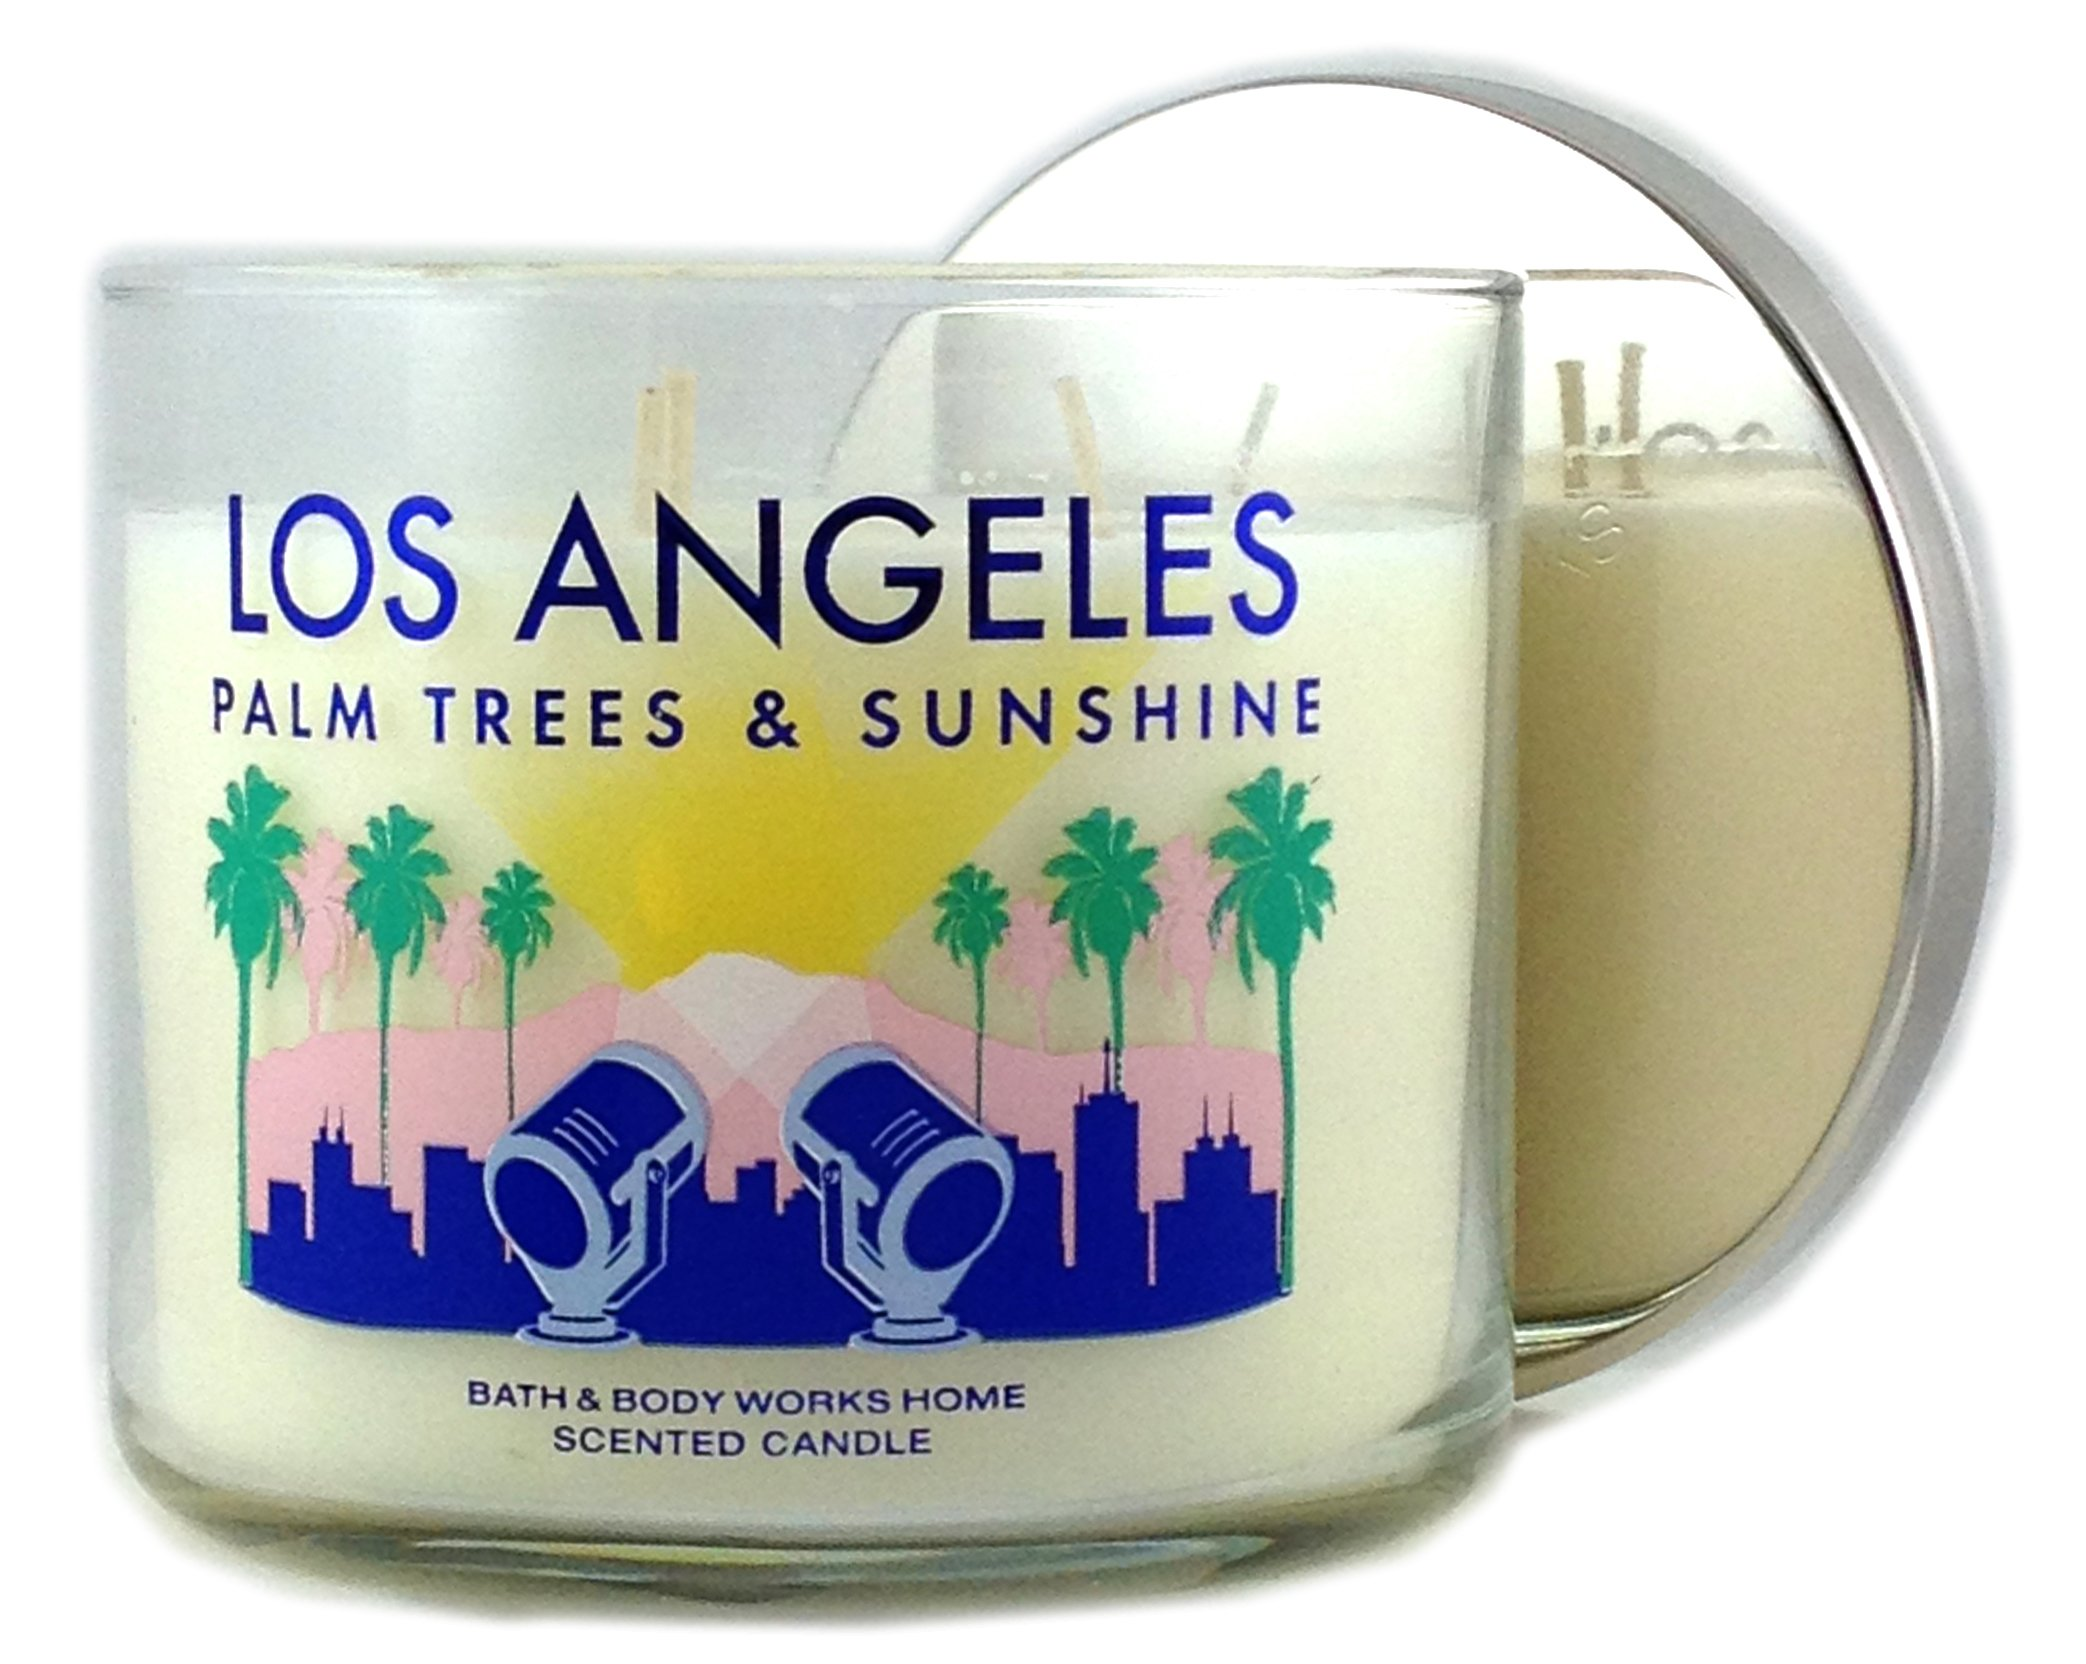 Bath & Body Works Candle 3 Wick 14.5 Ounce Los Angeles Palm Trees & Sunshine by Bath & Body Works